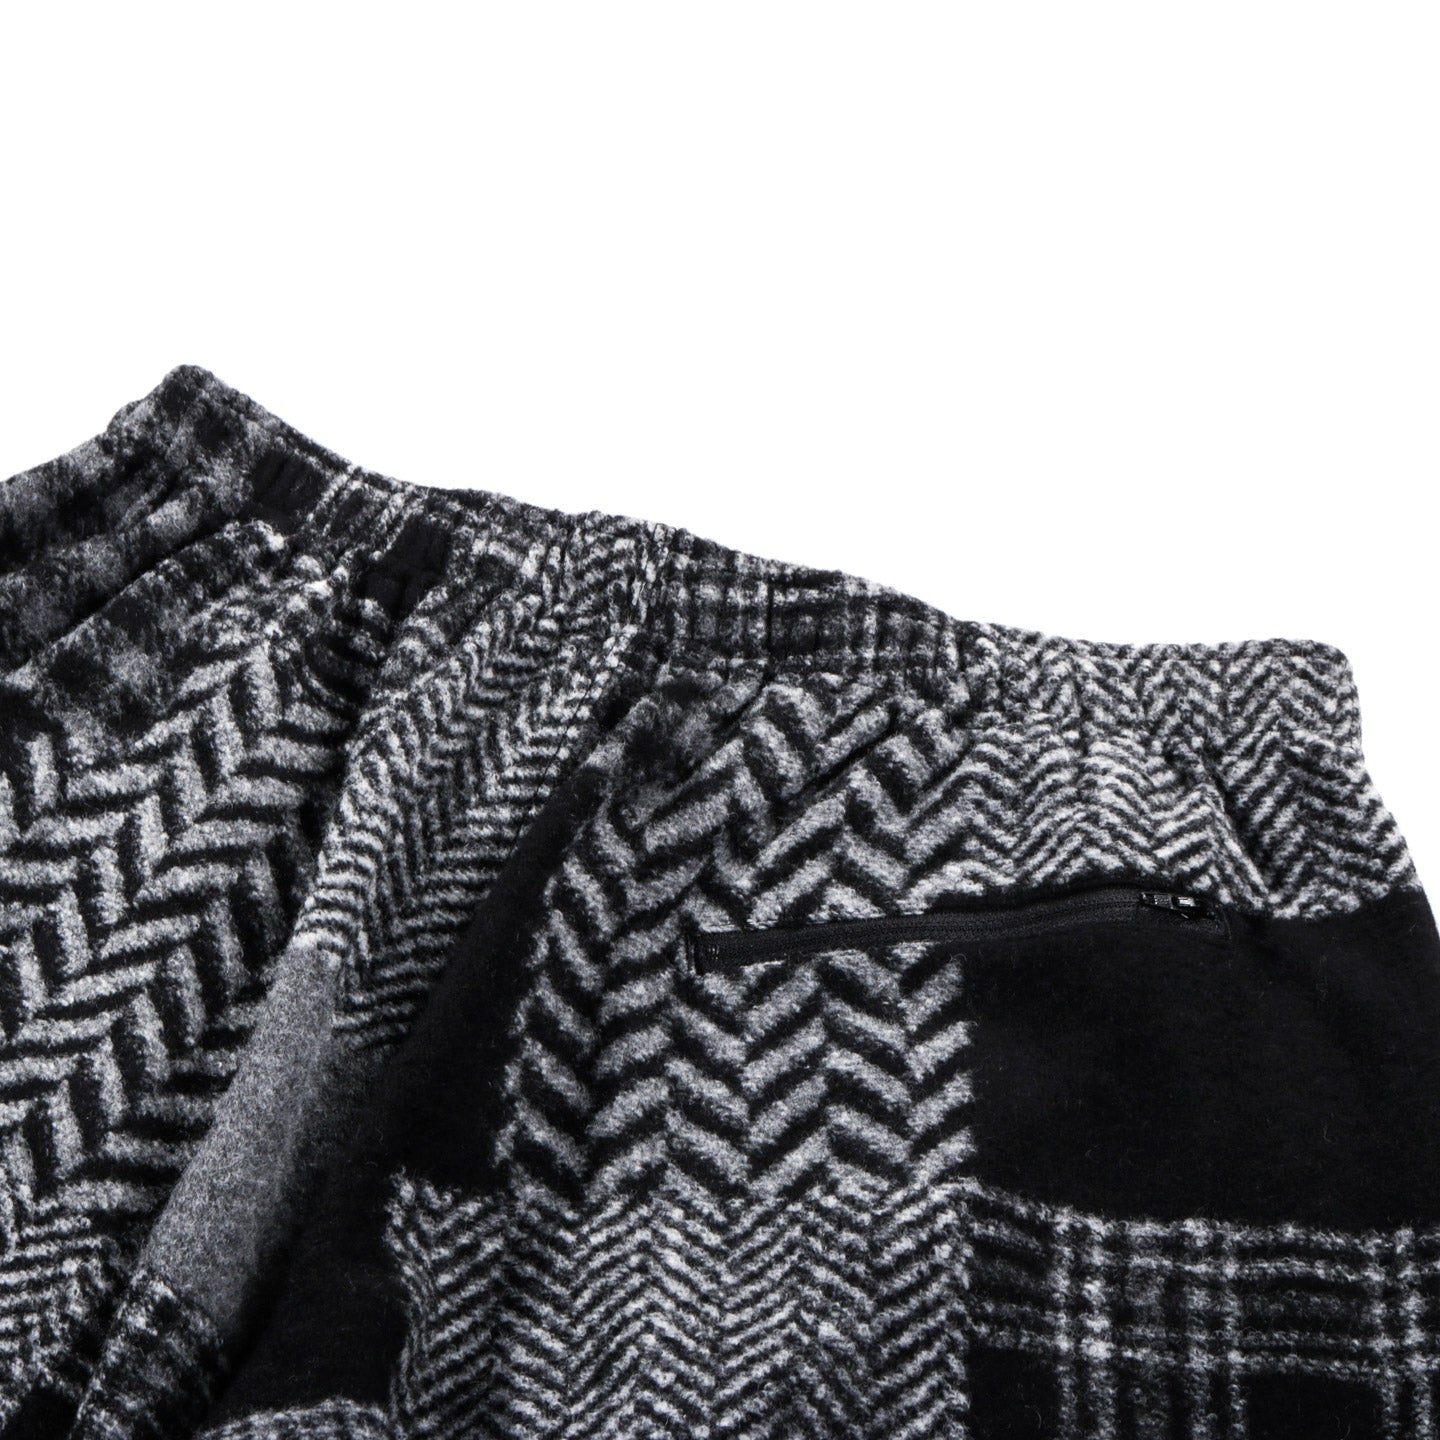 ENGINEERED GARMENTS HOODED INTERLINER CHARCOAL CURLY KNIT